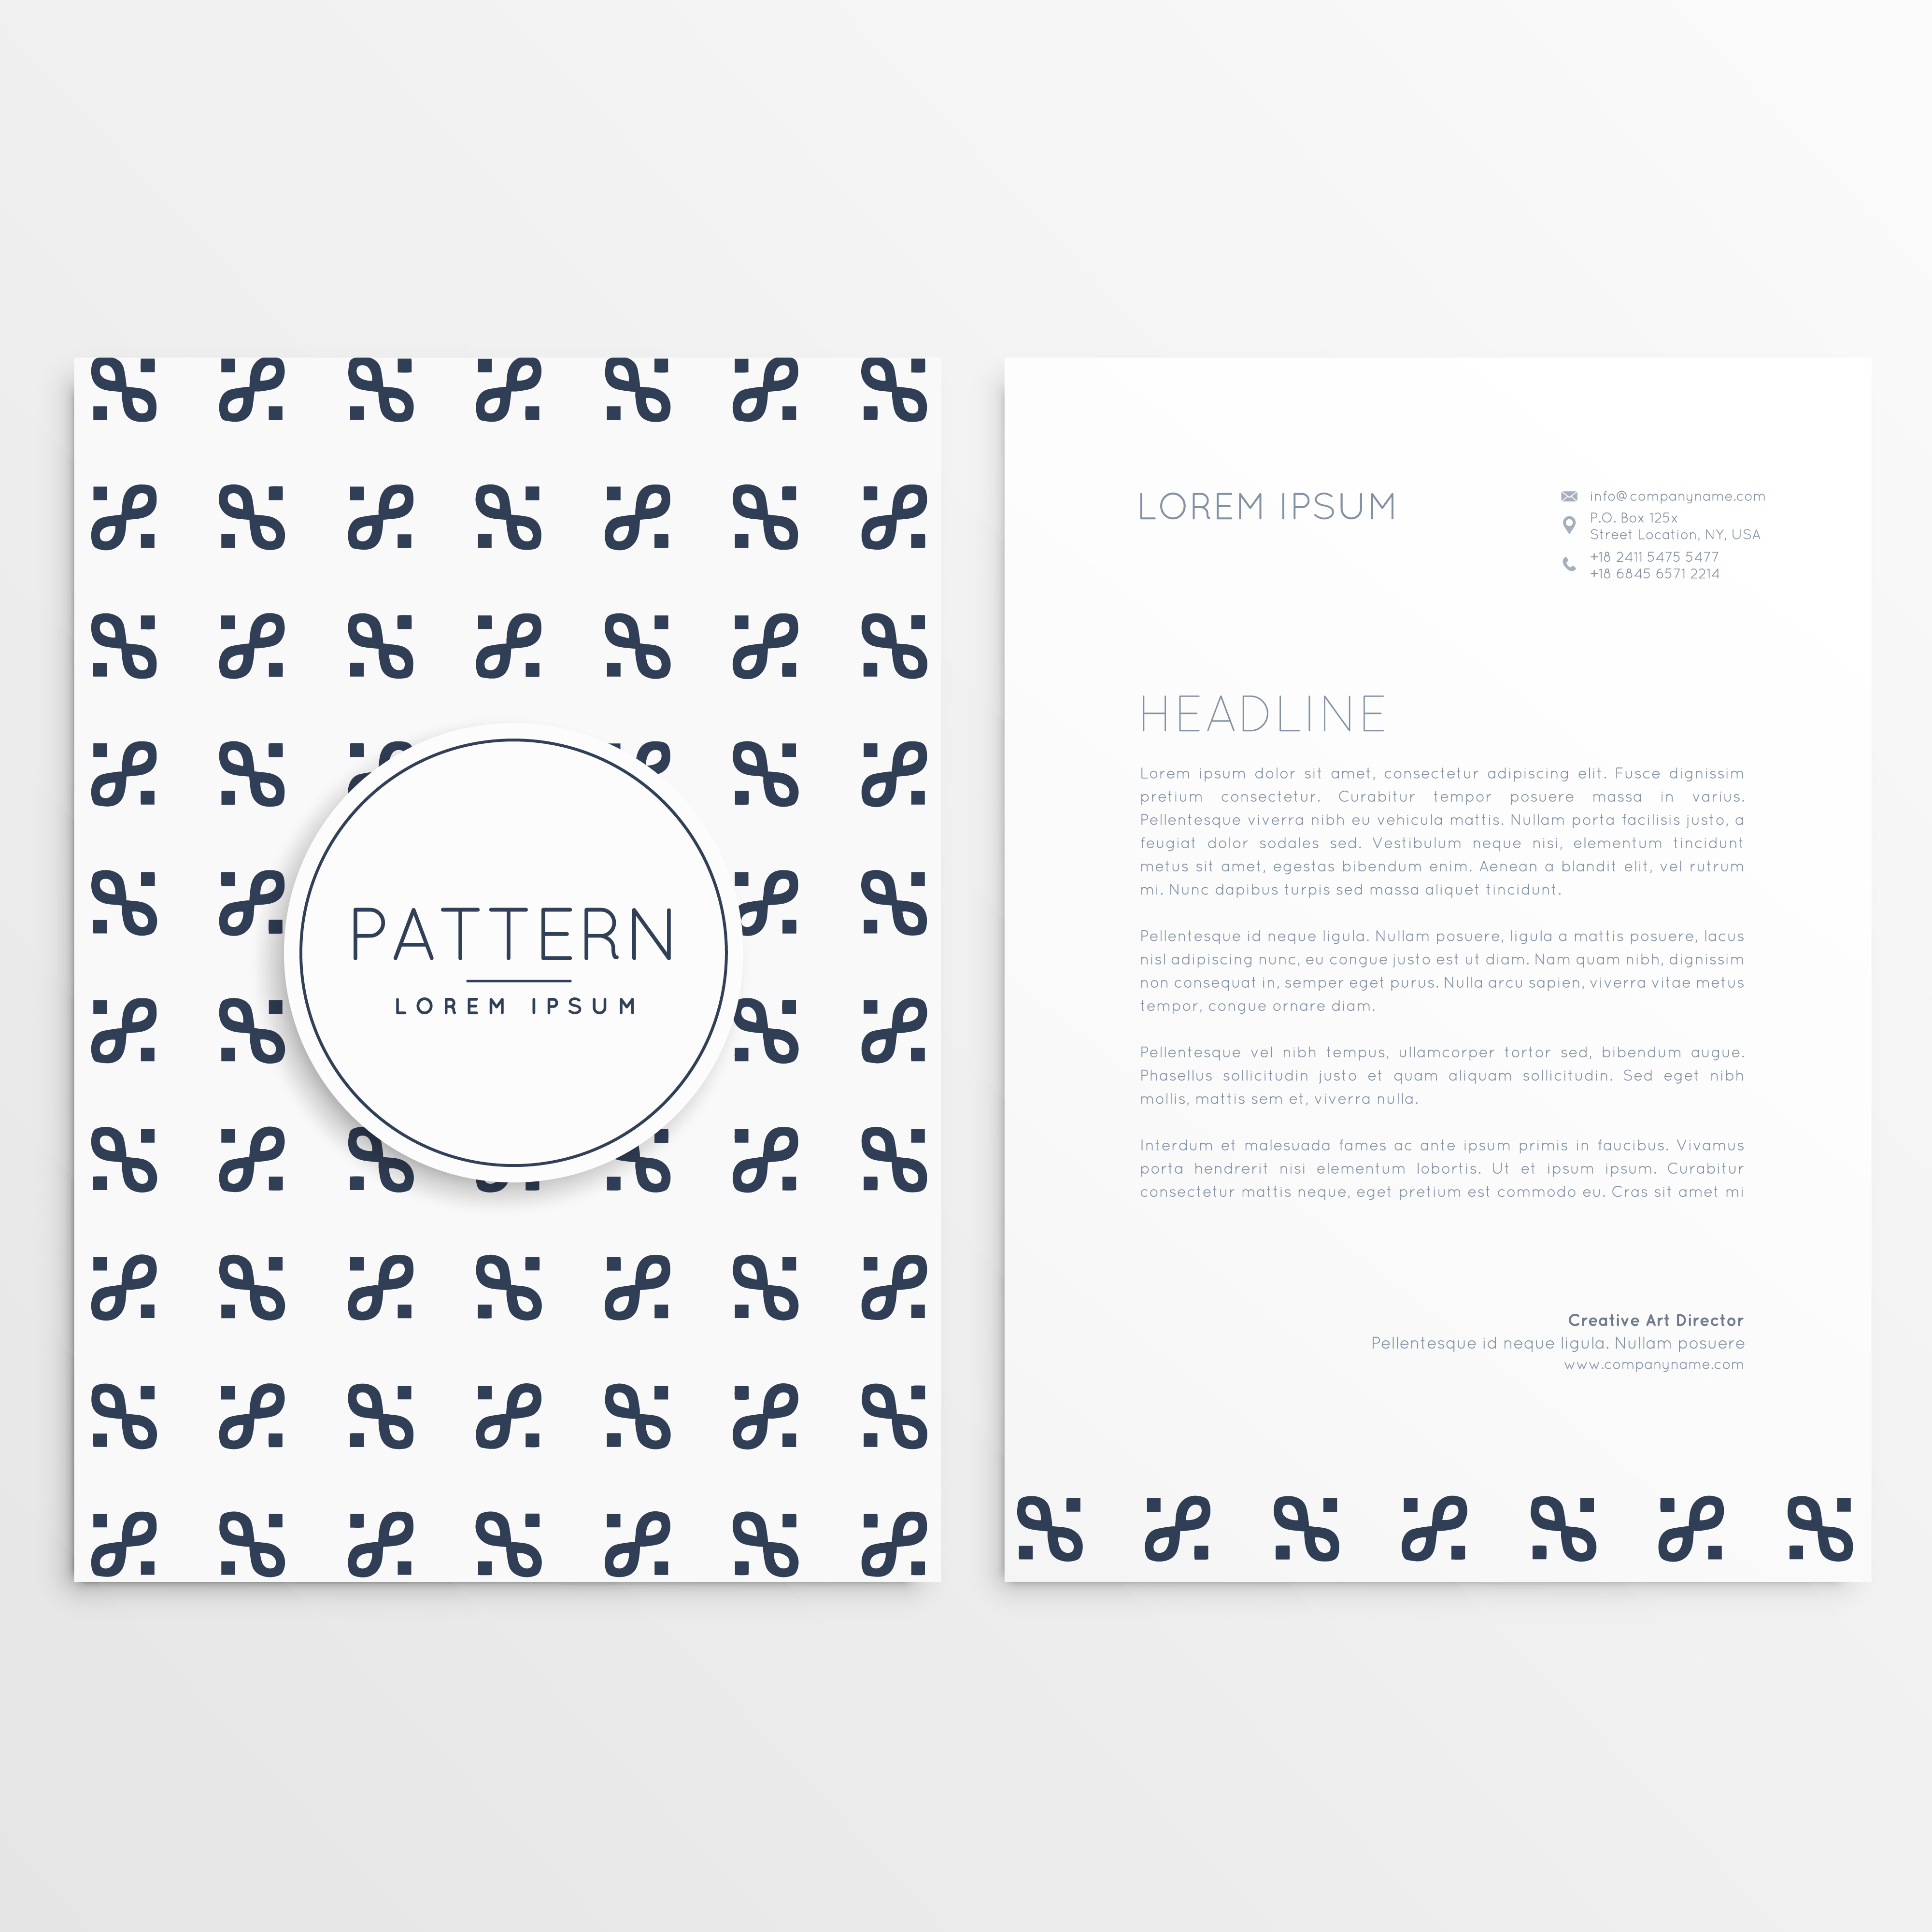 Clean Corporate Letterhead Template: Company Letterhead Design With Clean Pattern